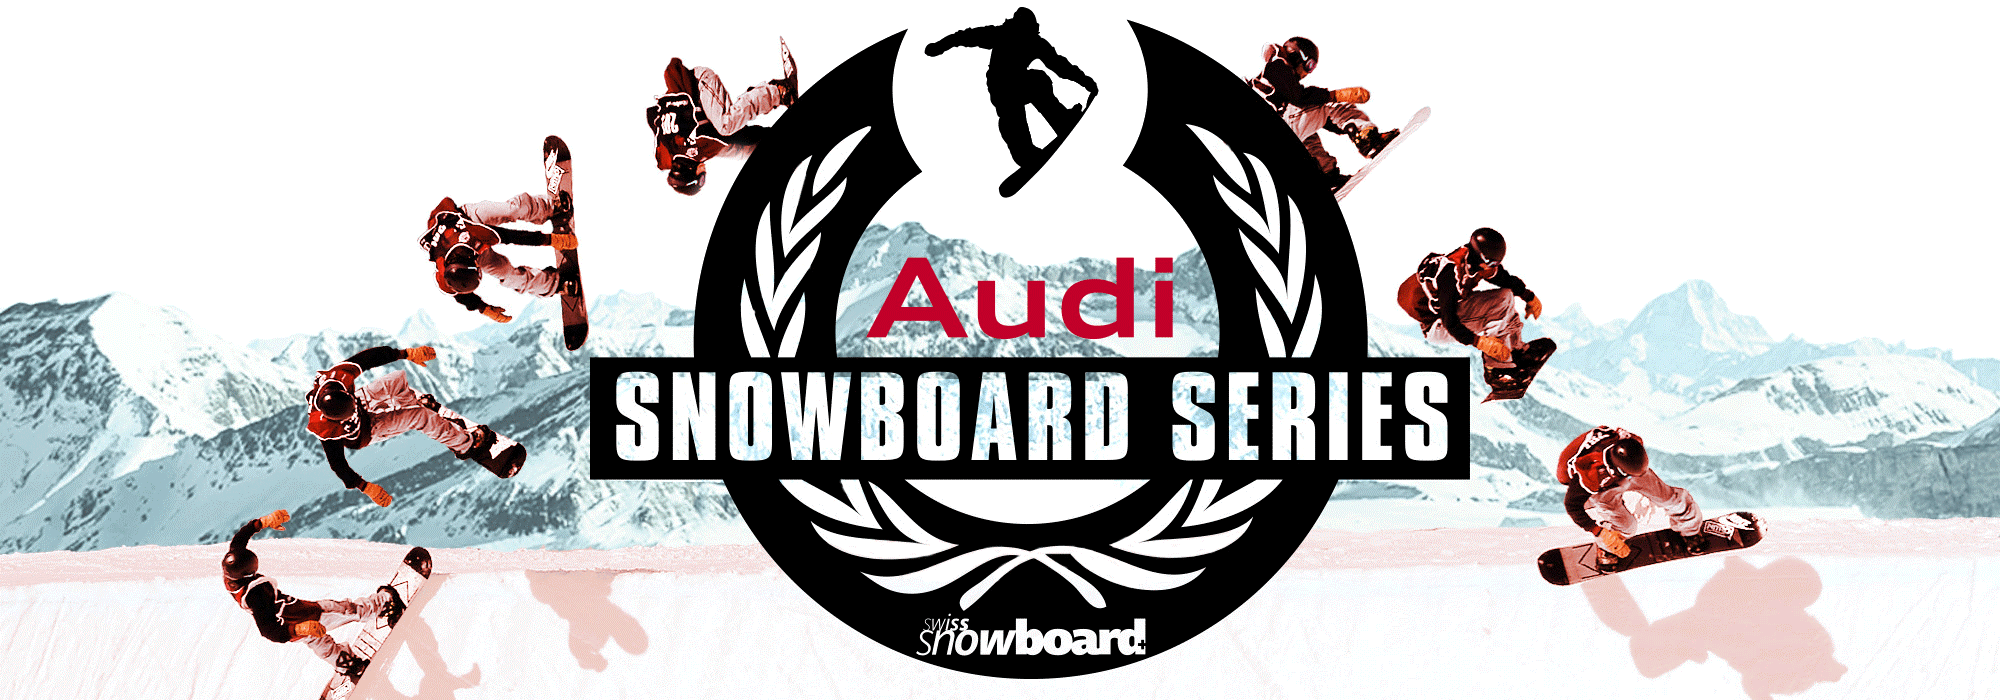 header image audisnowboardseries